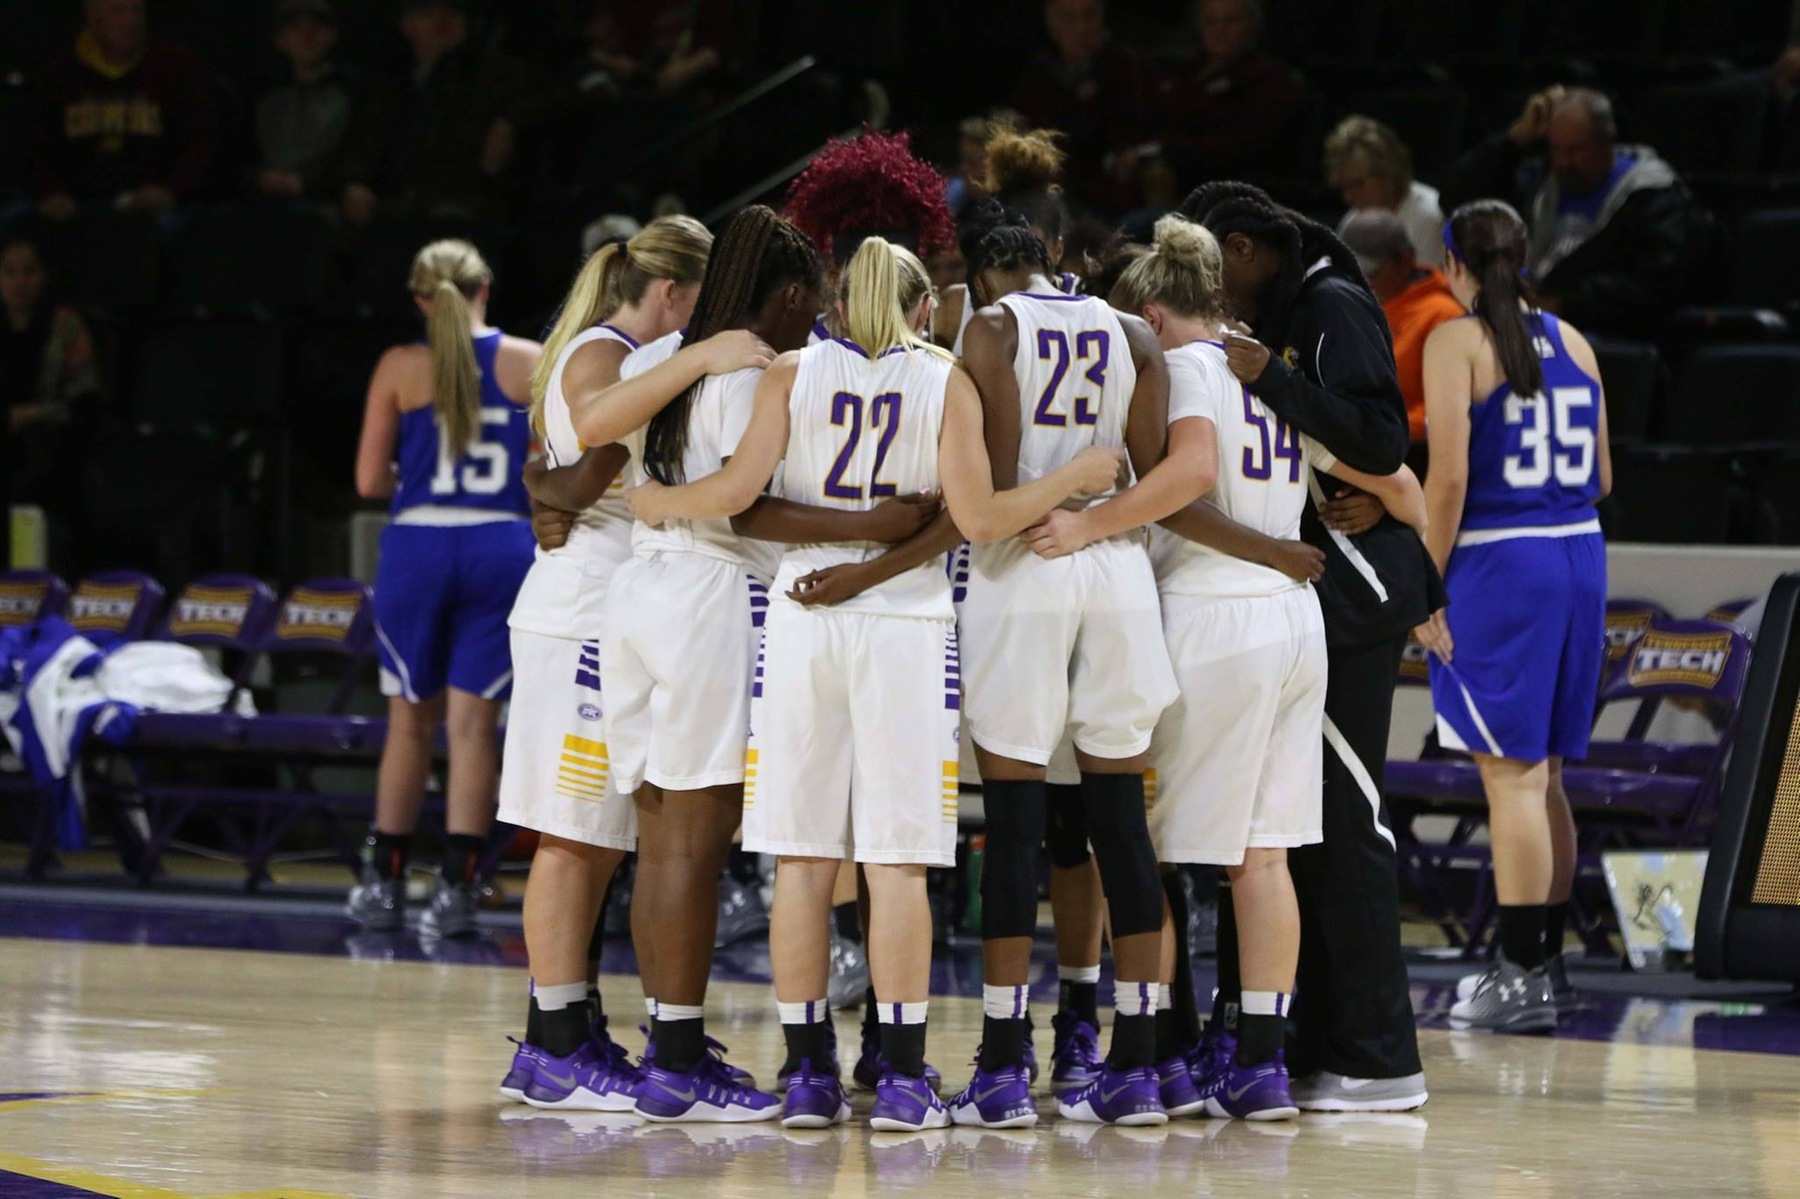 Tech women's hoops to hold second annual Biscuits & Basketball September 29